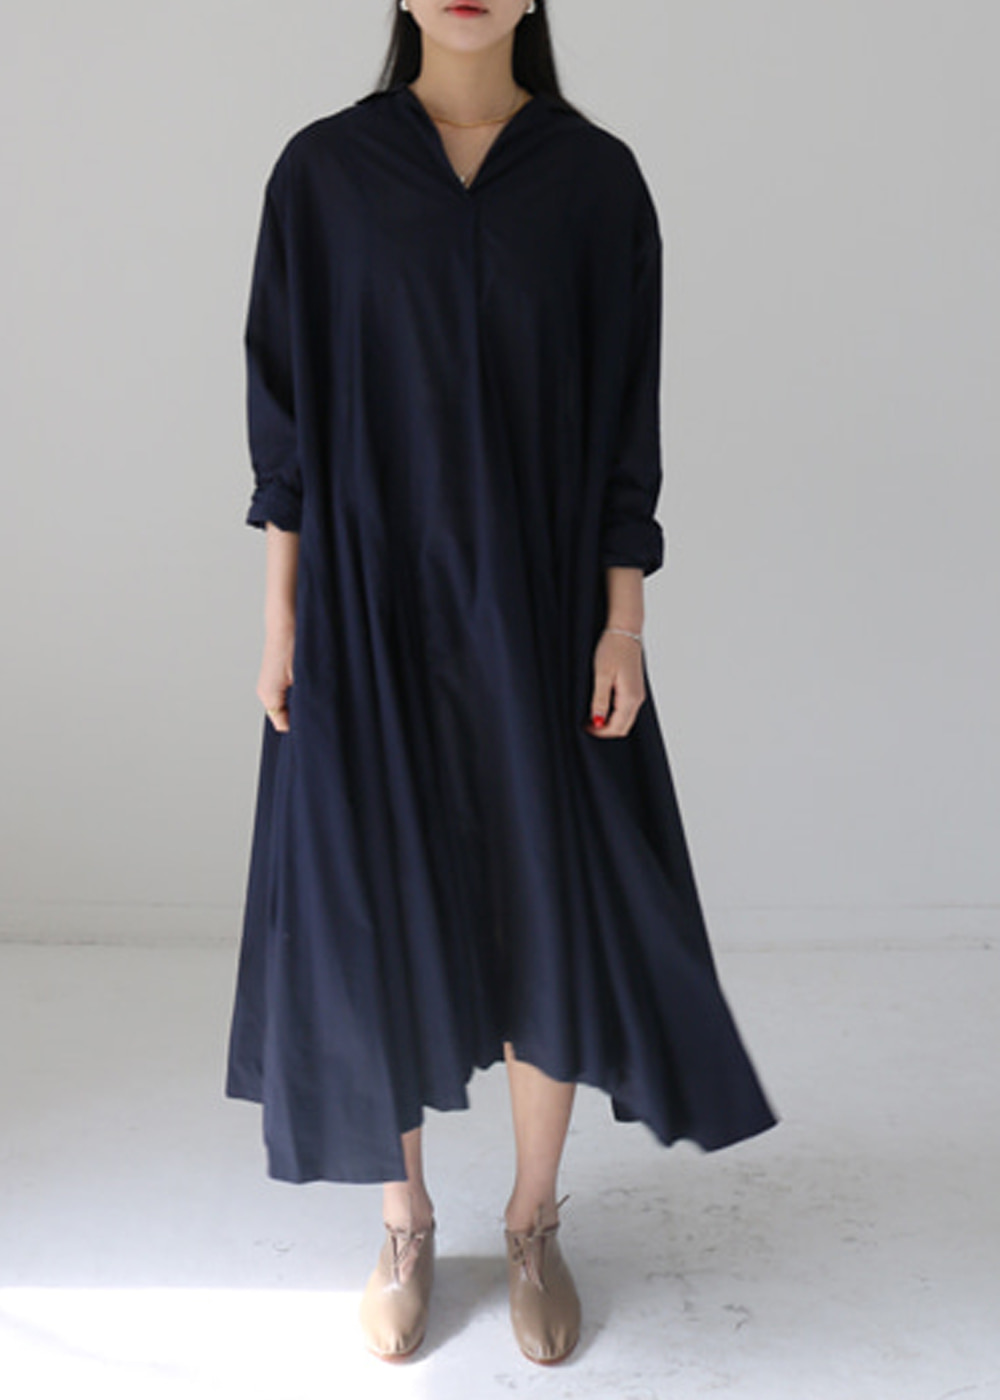 CYB FINE NAVY COTTON DRESS